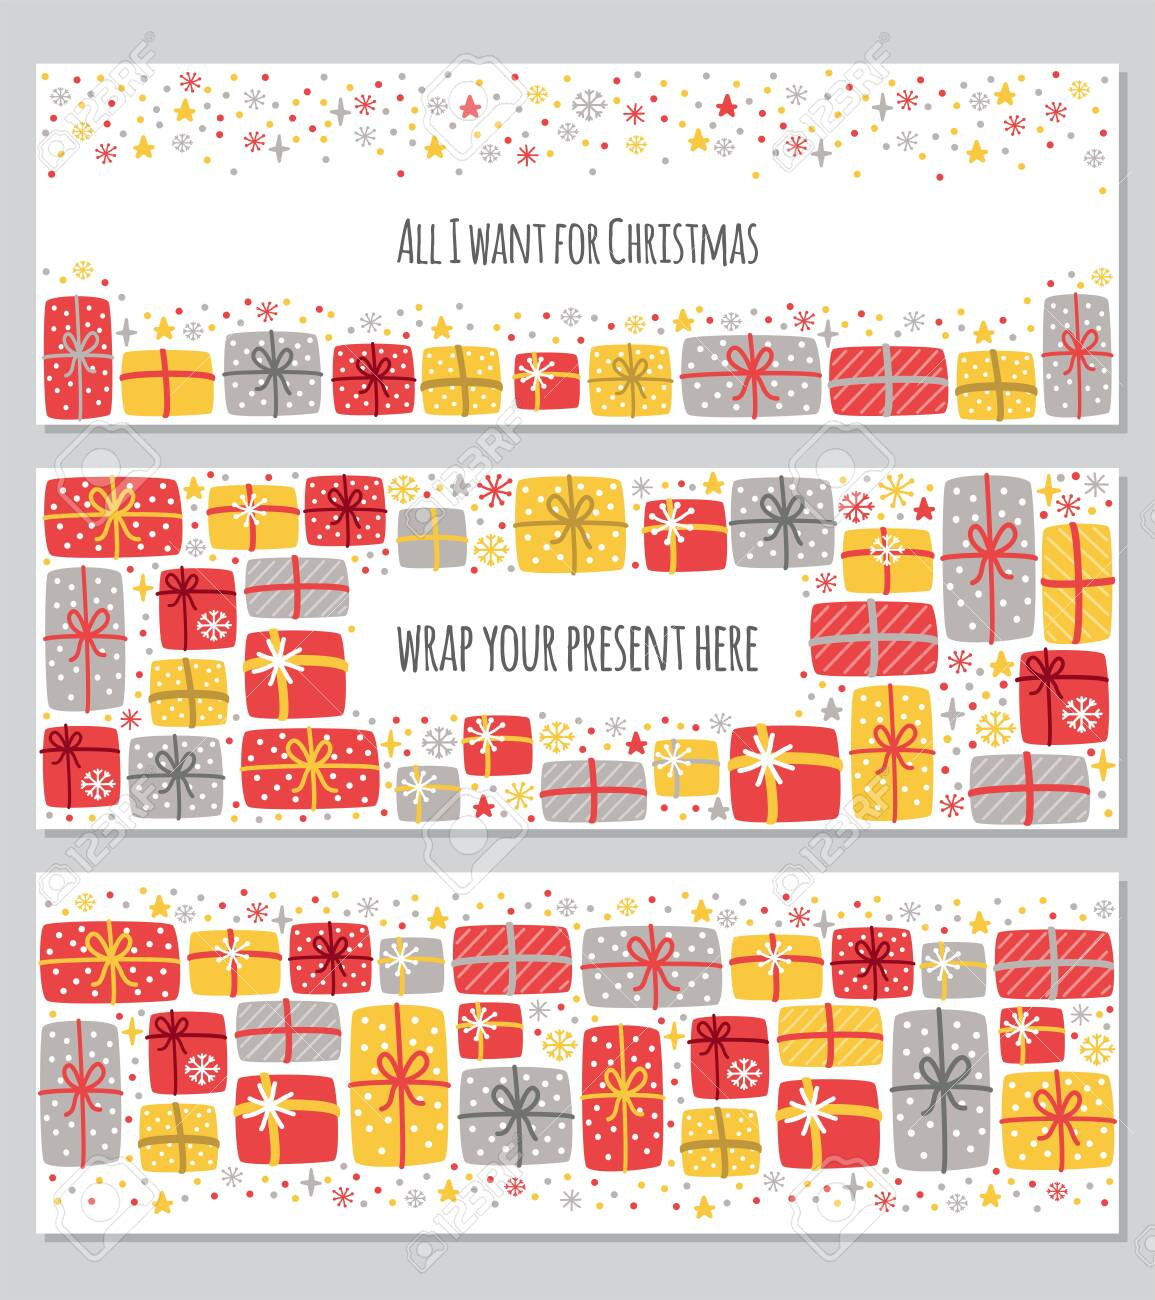 Christmas Backgrounds Cute.Cute Set Of All I Want For Christmas Backgrounds With Hand Drawn